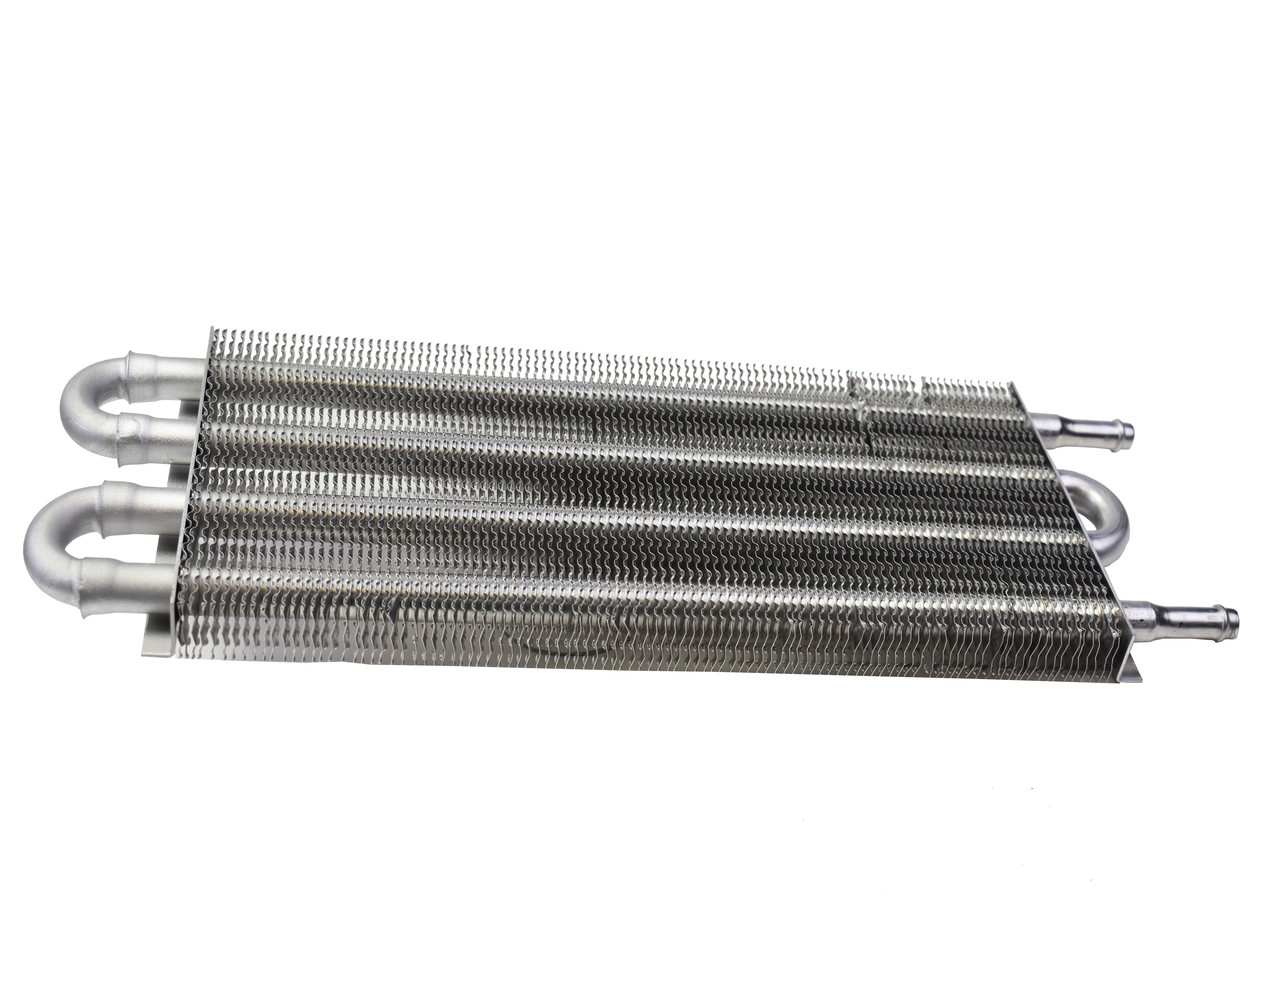 "A-Team Performance Aluminum Tube & Fin Transmission Universal Oil Cooler, 15 1/2"" x 5"""